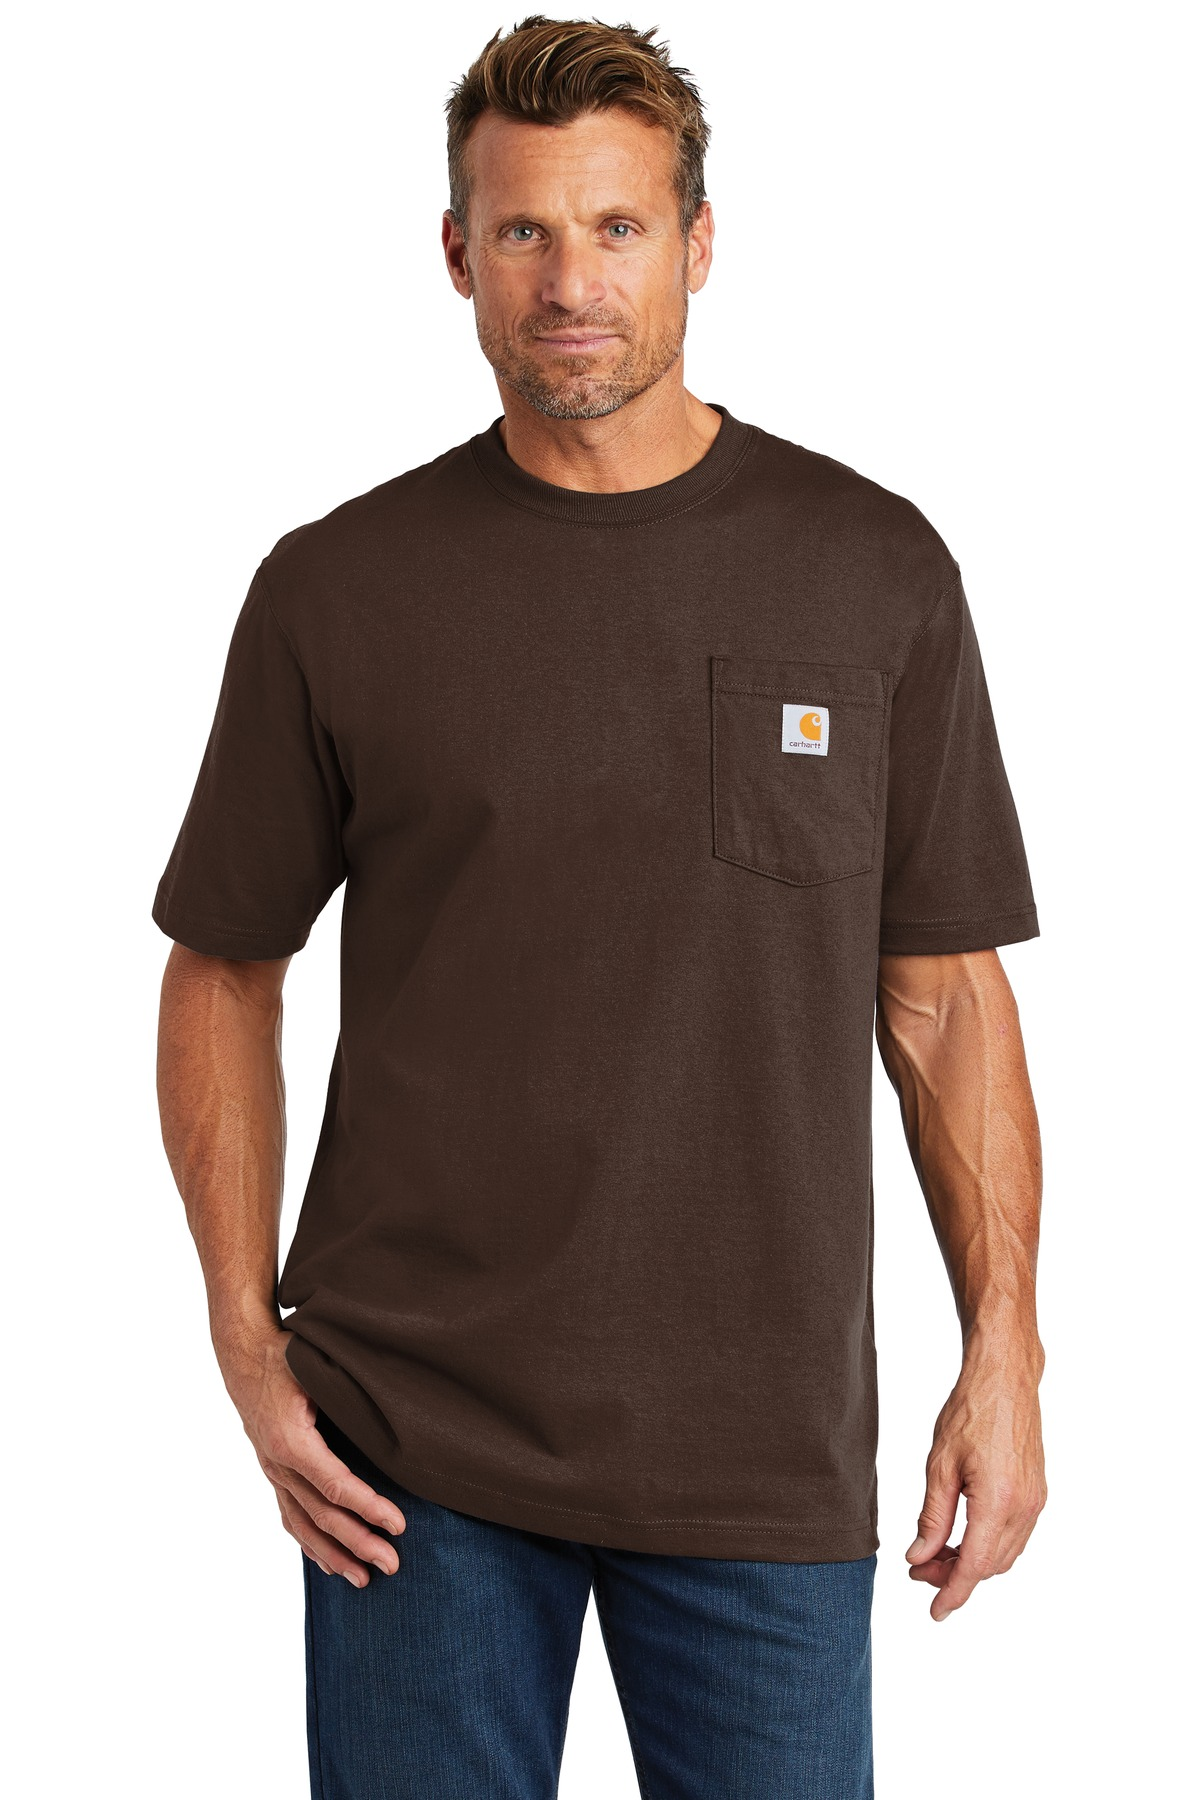 Carhartt  ®  Workwear Pocket Short Sleeve T-Shirt. CTK87 - Dark Brown